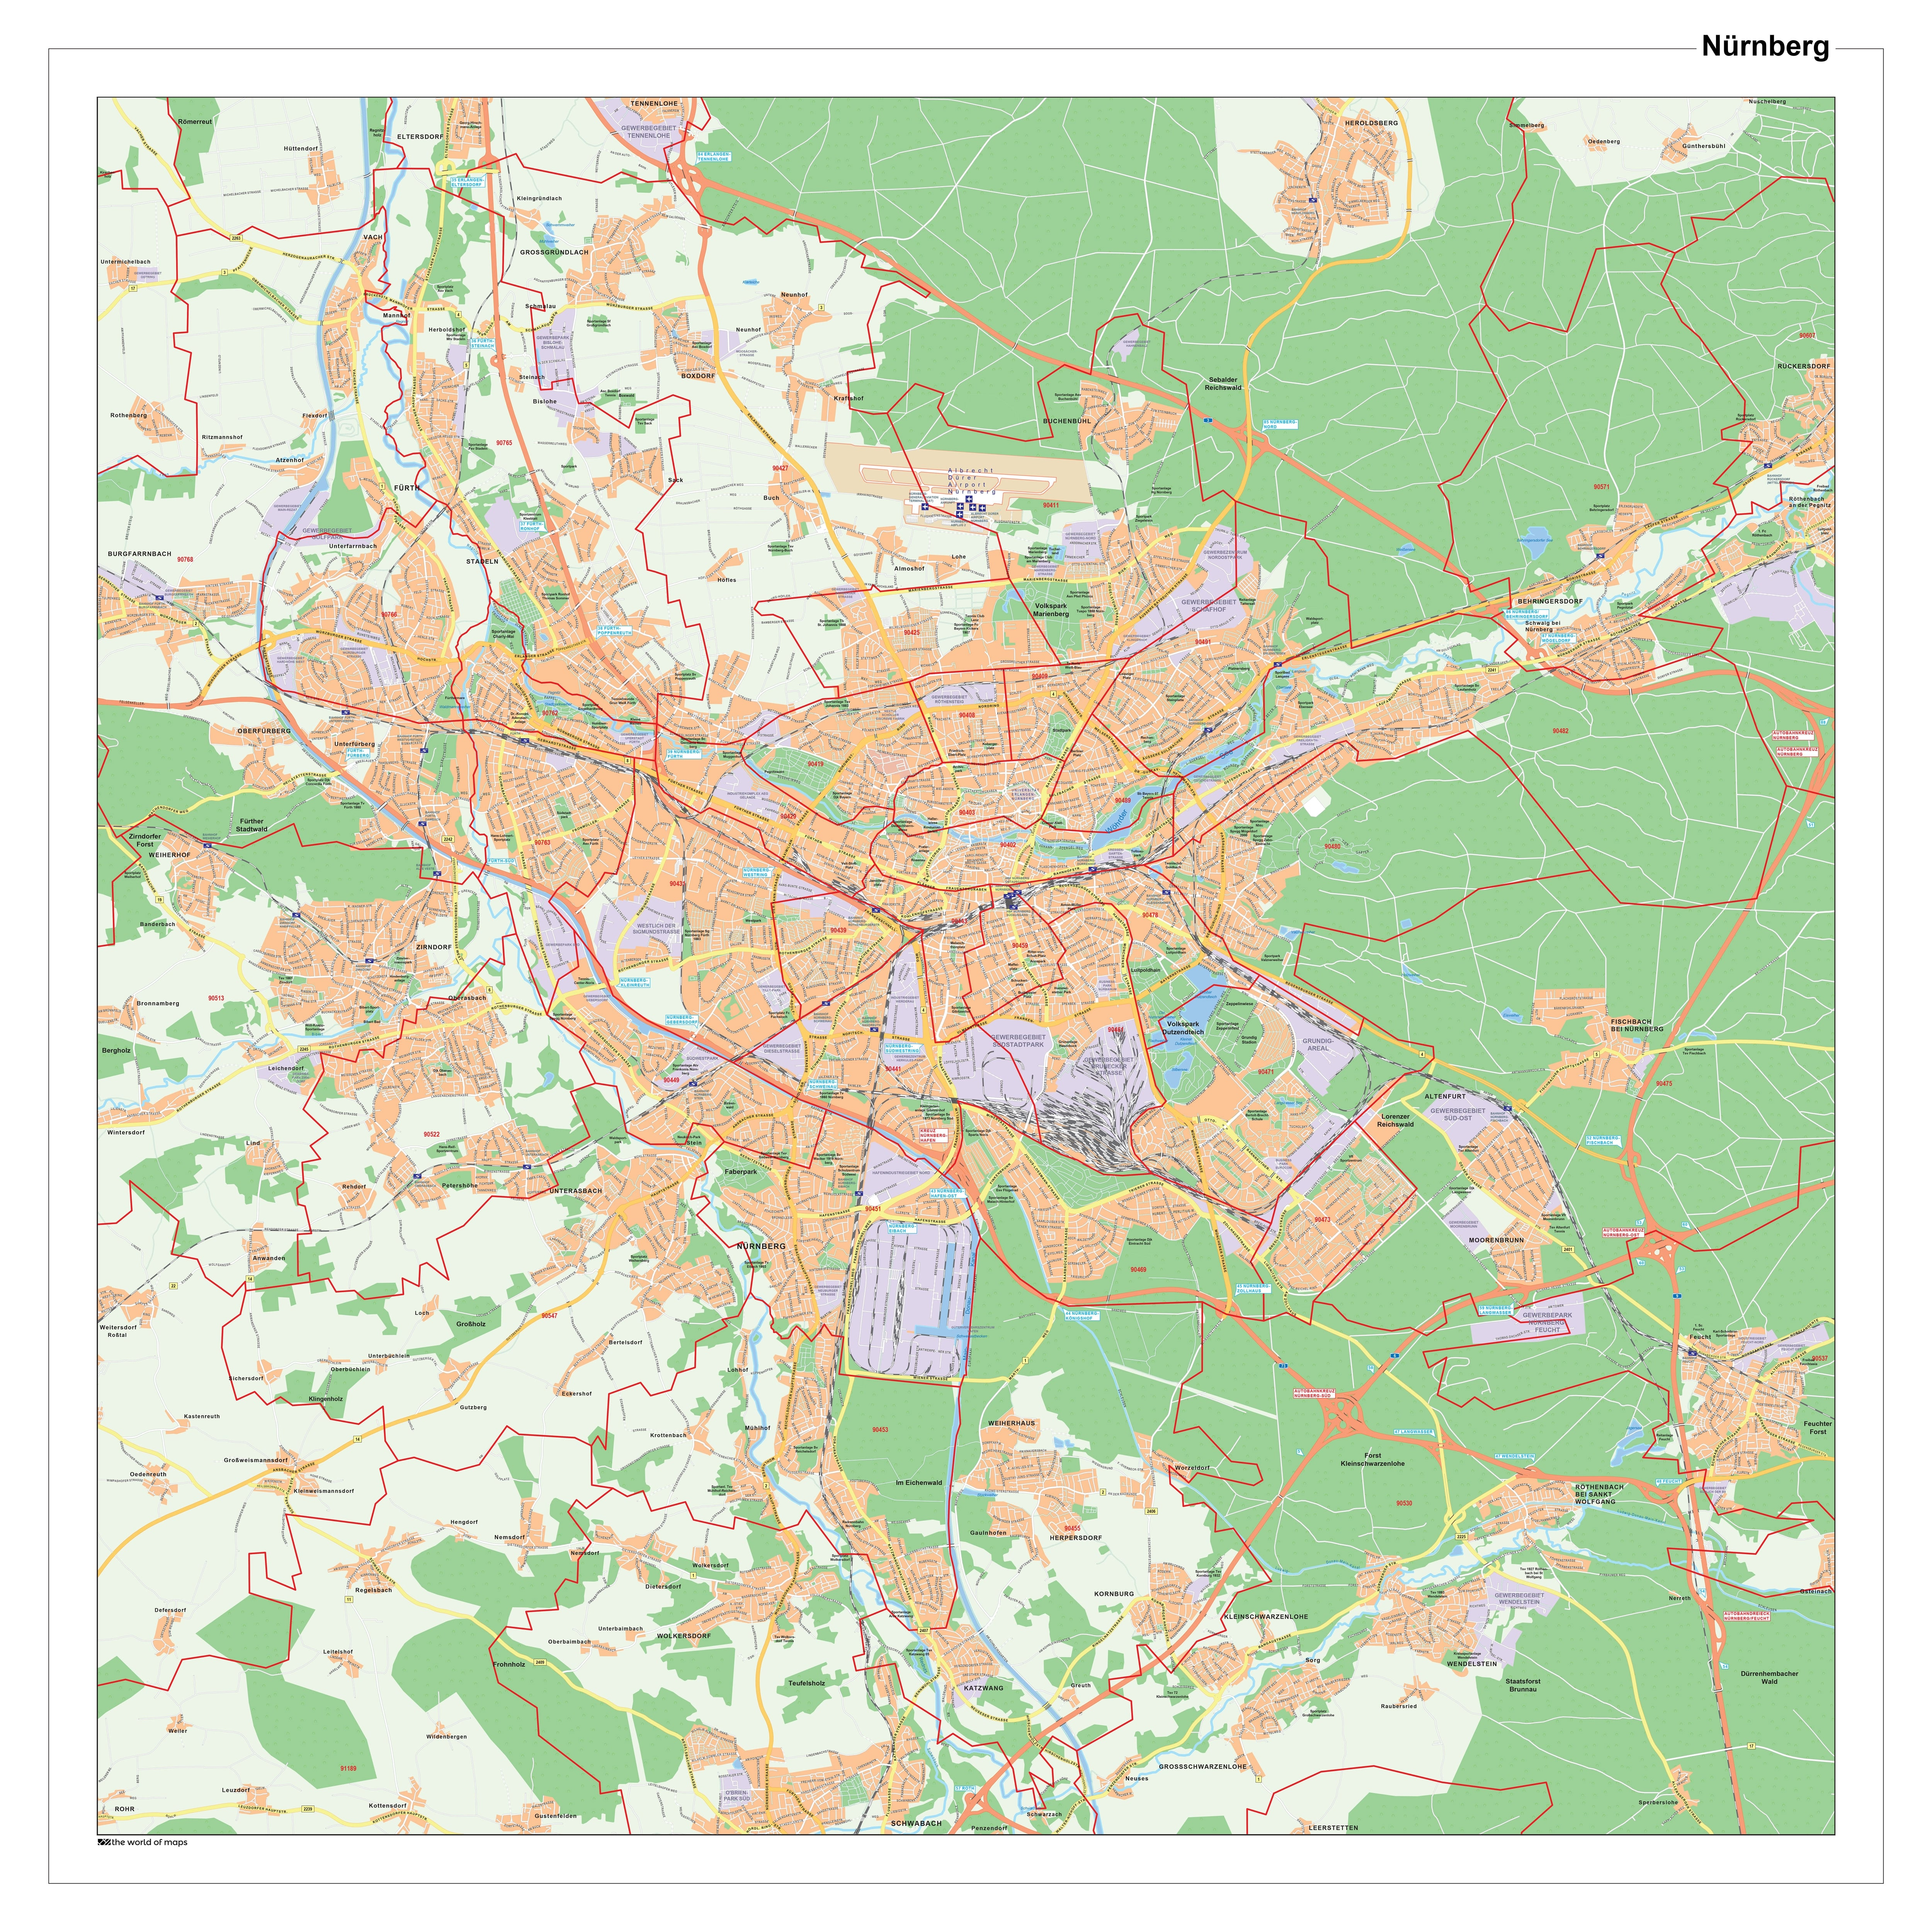 City map Nuremberg with zip codes 100 x 100cm - City Maps - Germany Zip Codes Map on